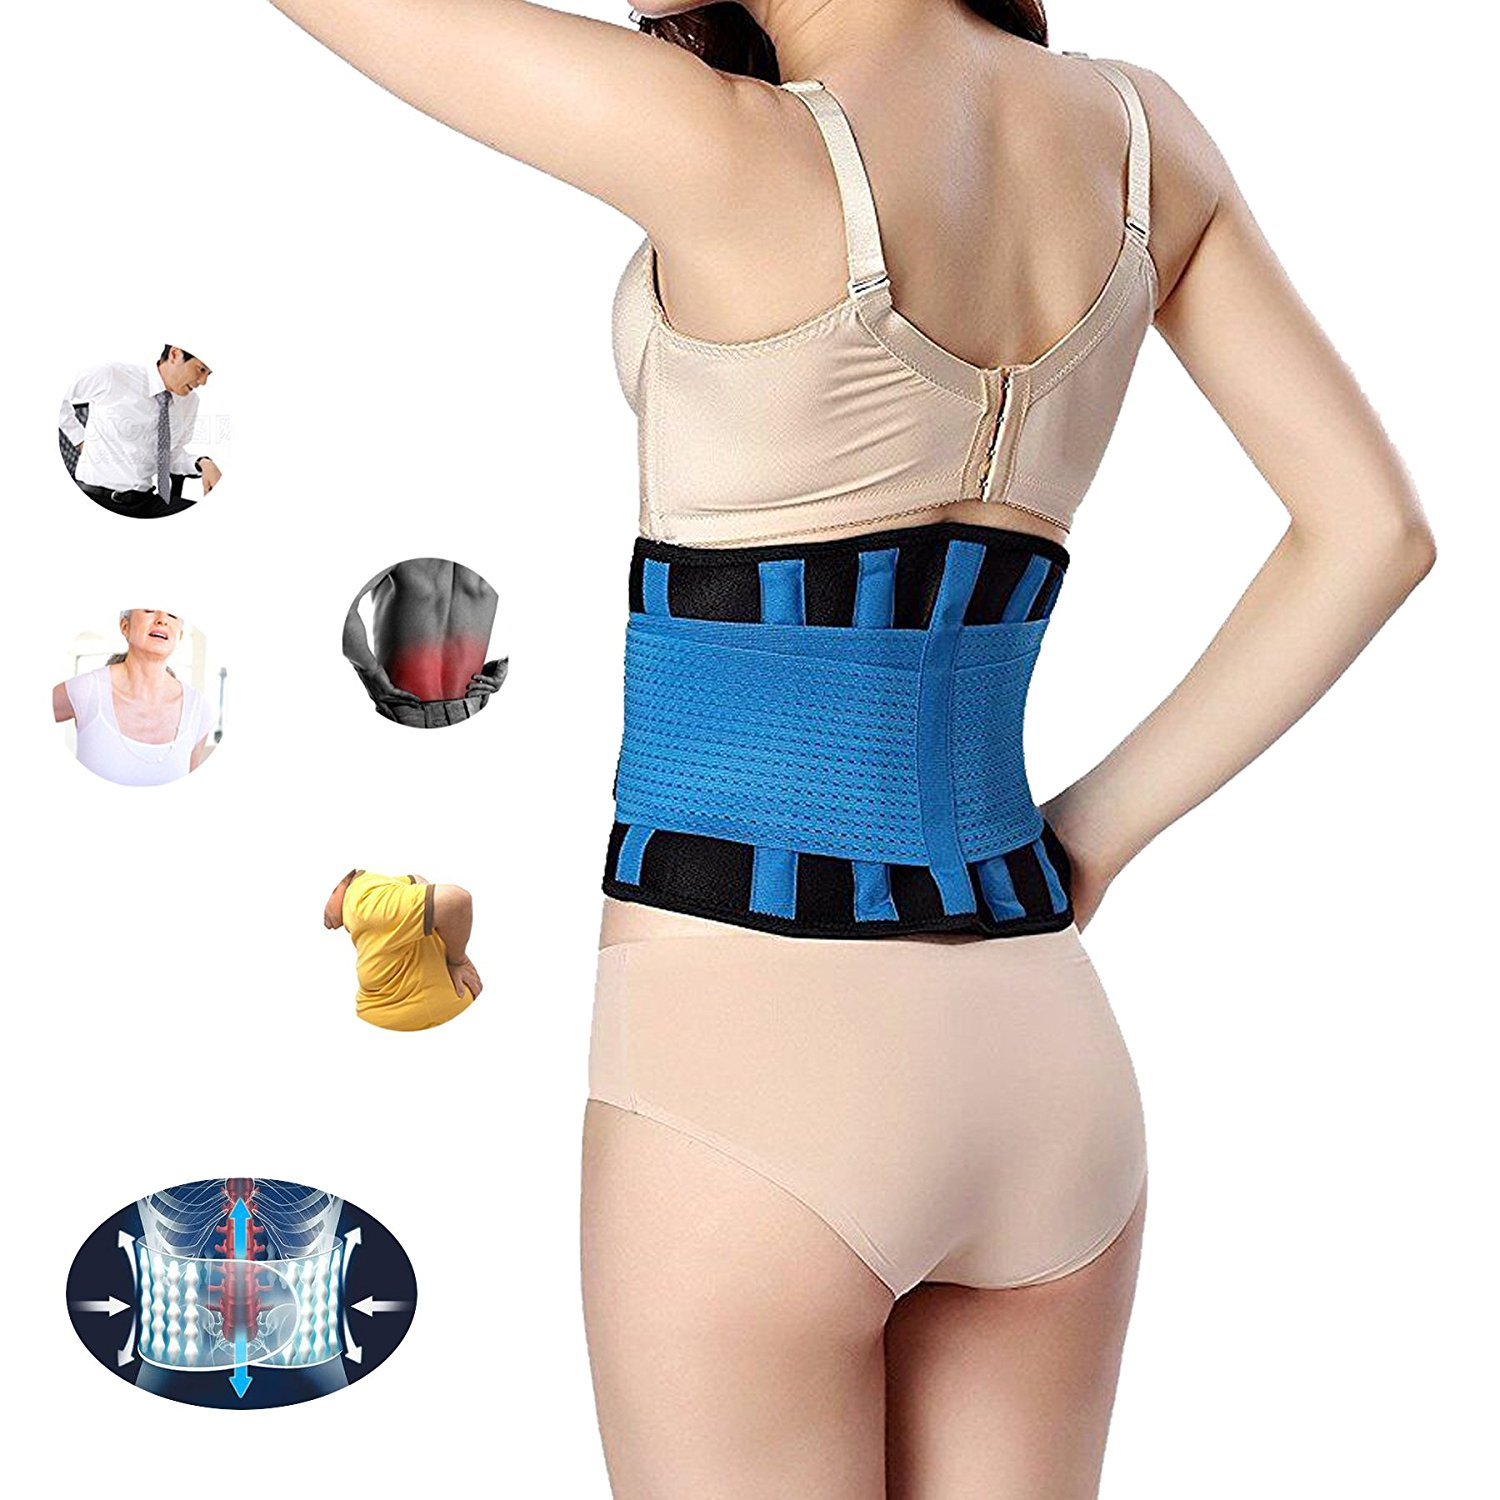 b4040675ad5 Get Quotations · Lumbar Support Belt Protect Waist for Women and Men- Lower  Back Brace for Back Pain